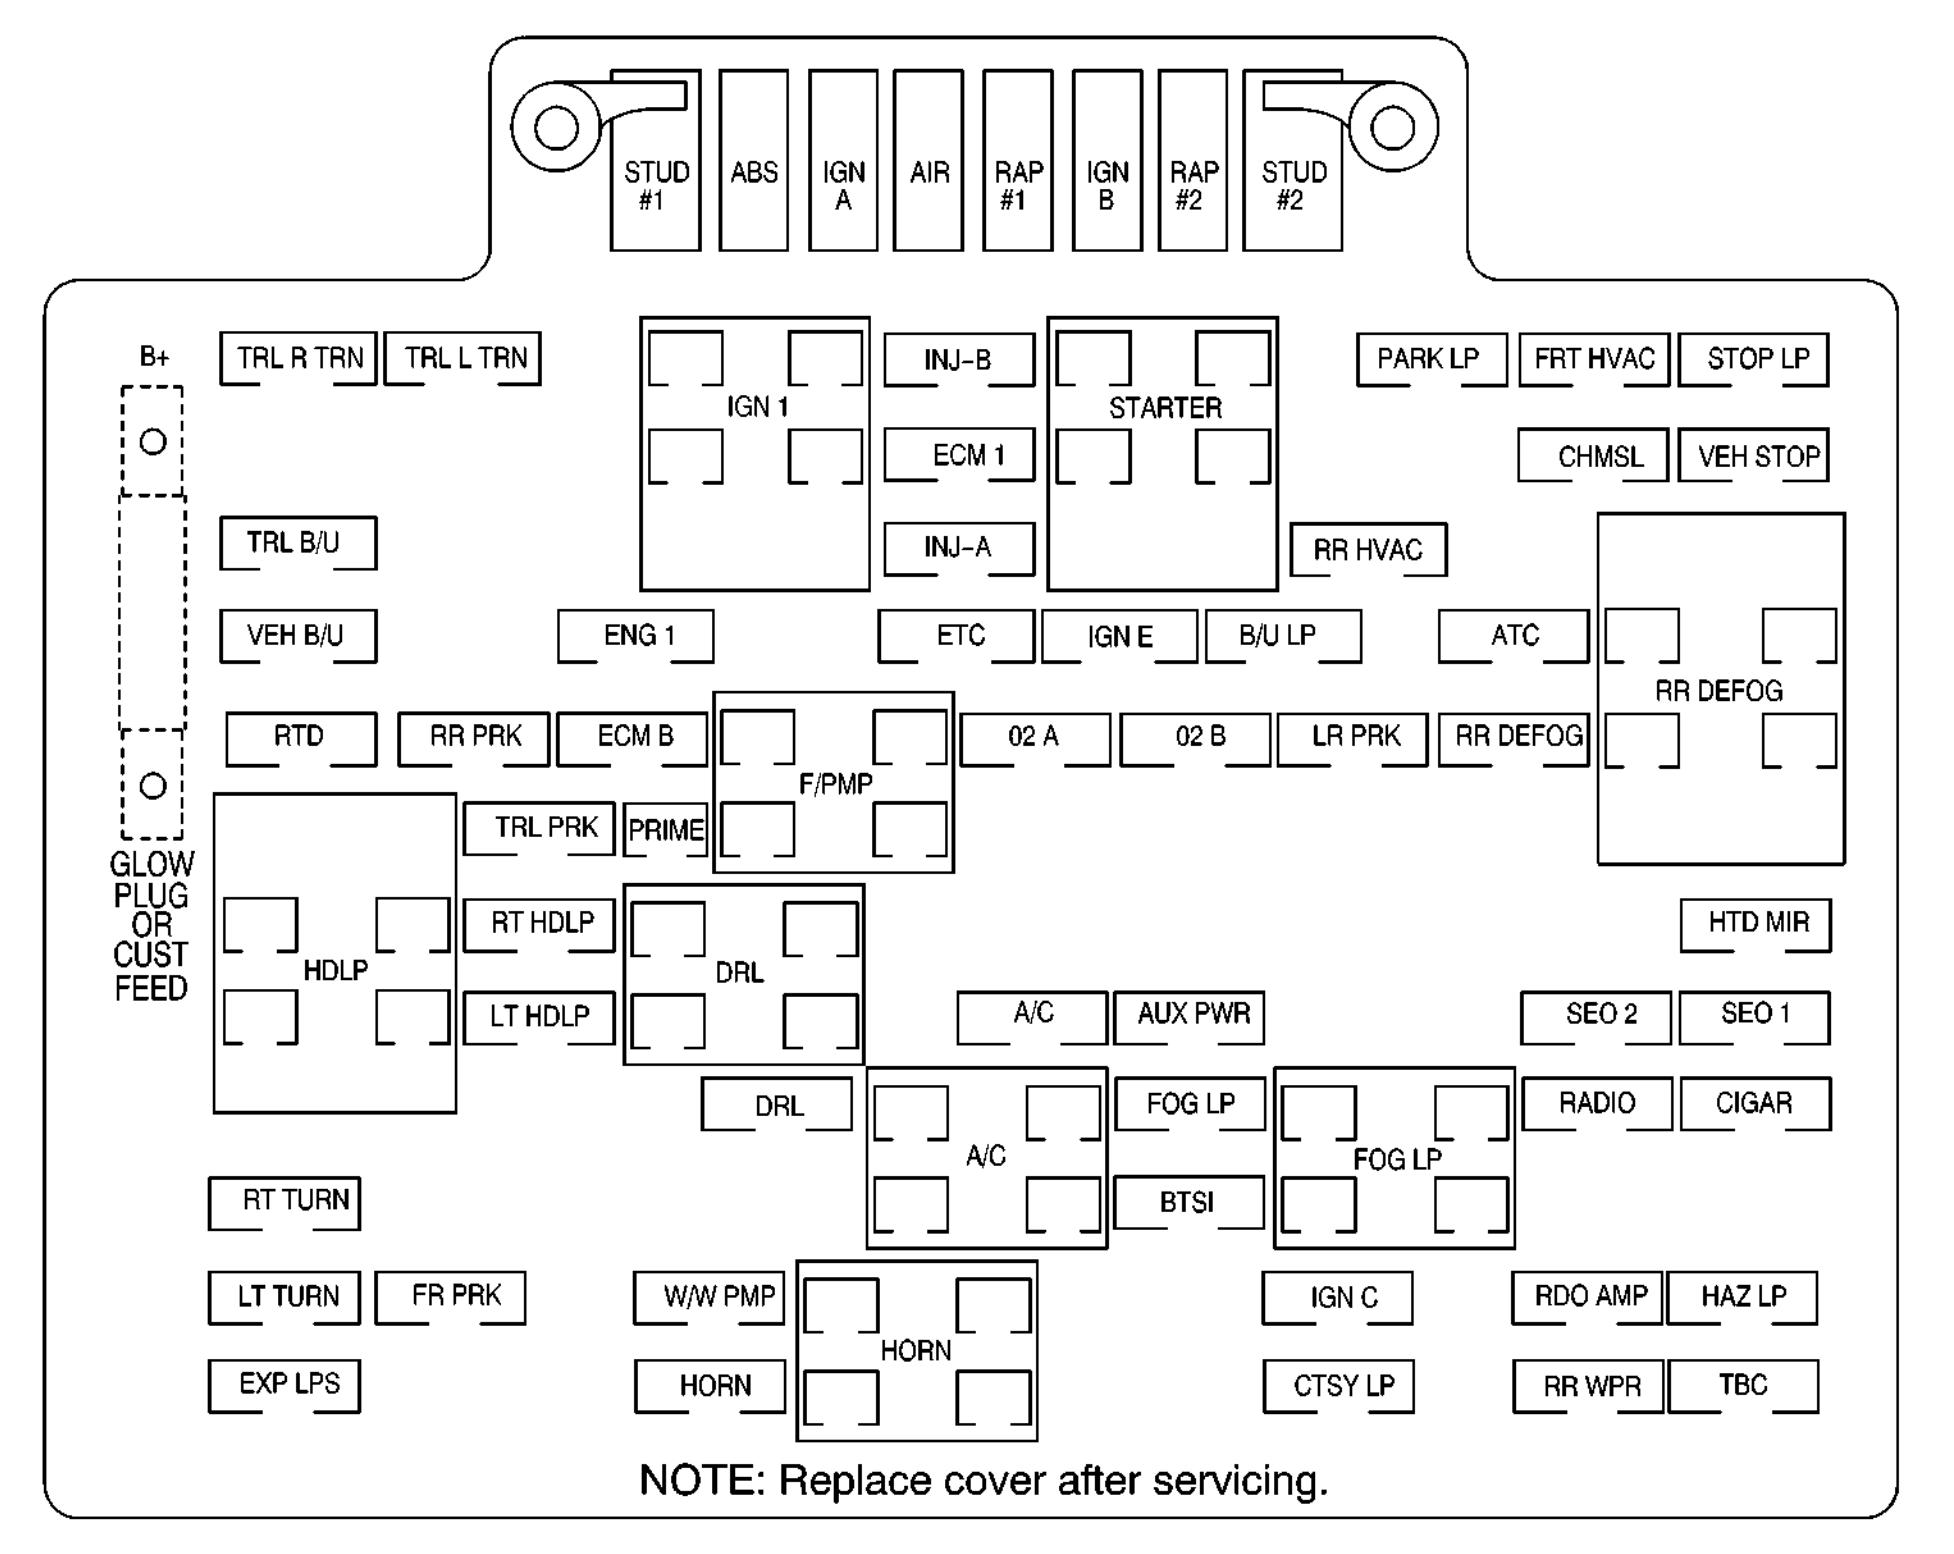 hight resolution of 2002 tahoe fuse panel diagram schema diagram database fuse box diagram 2002 tahoe